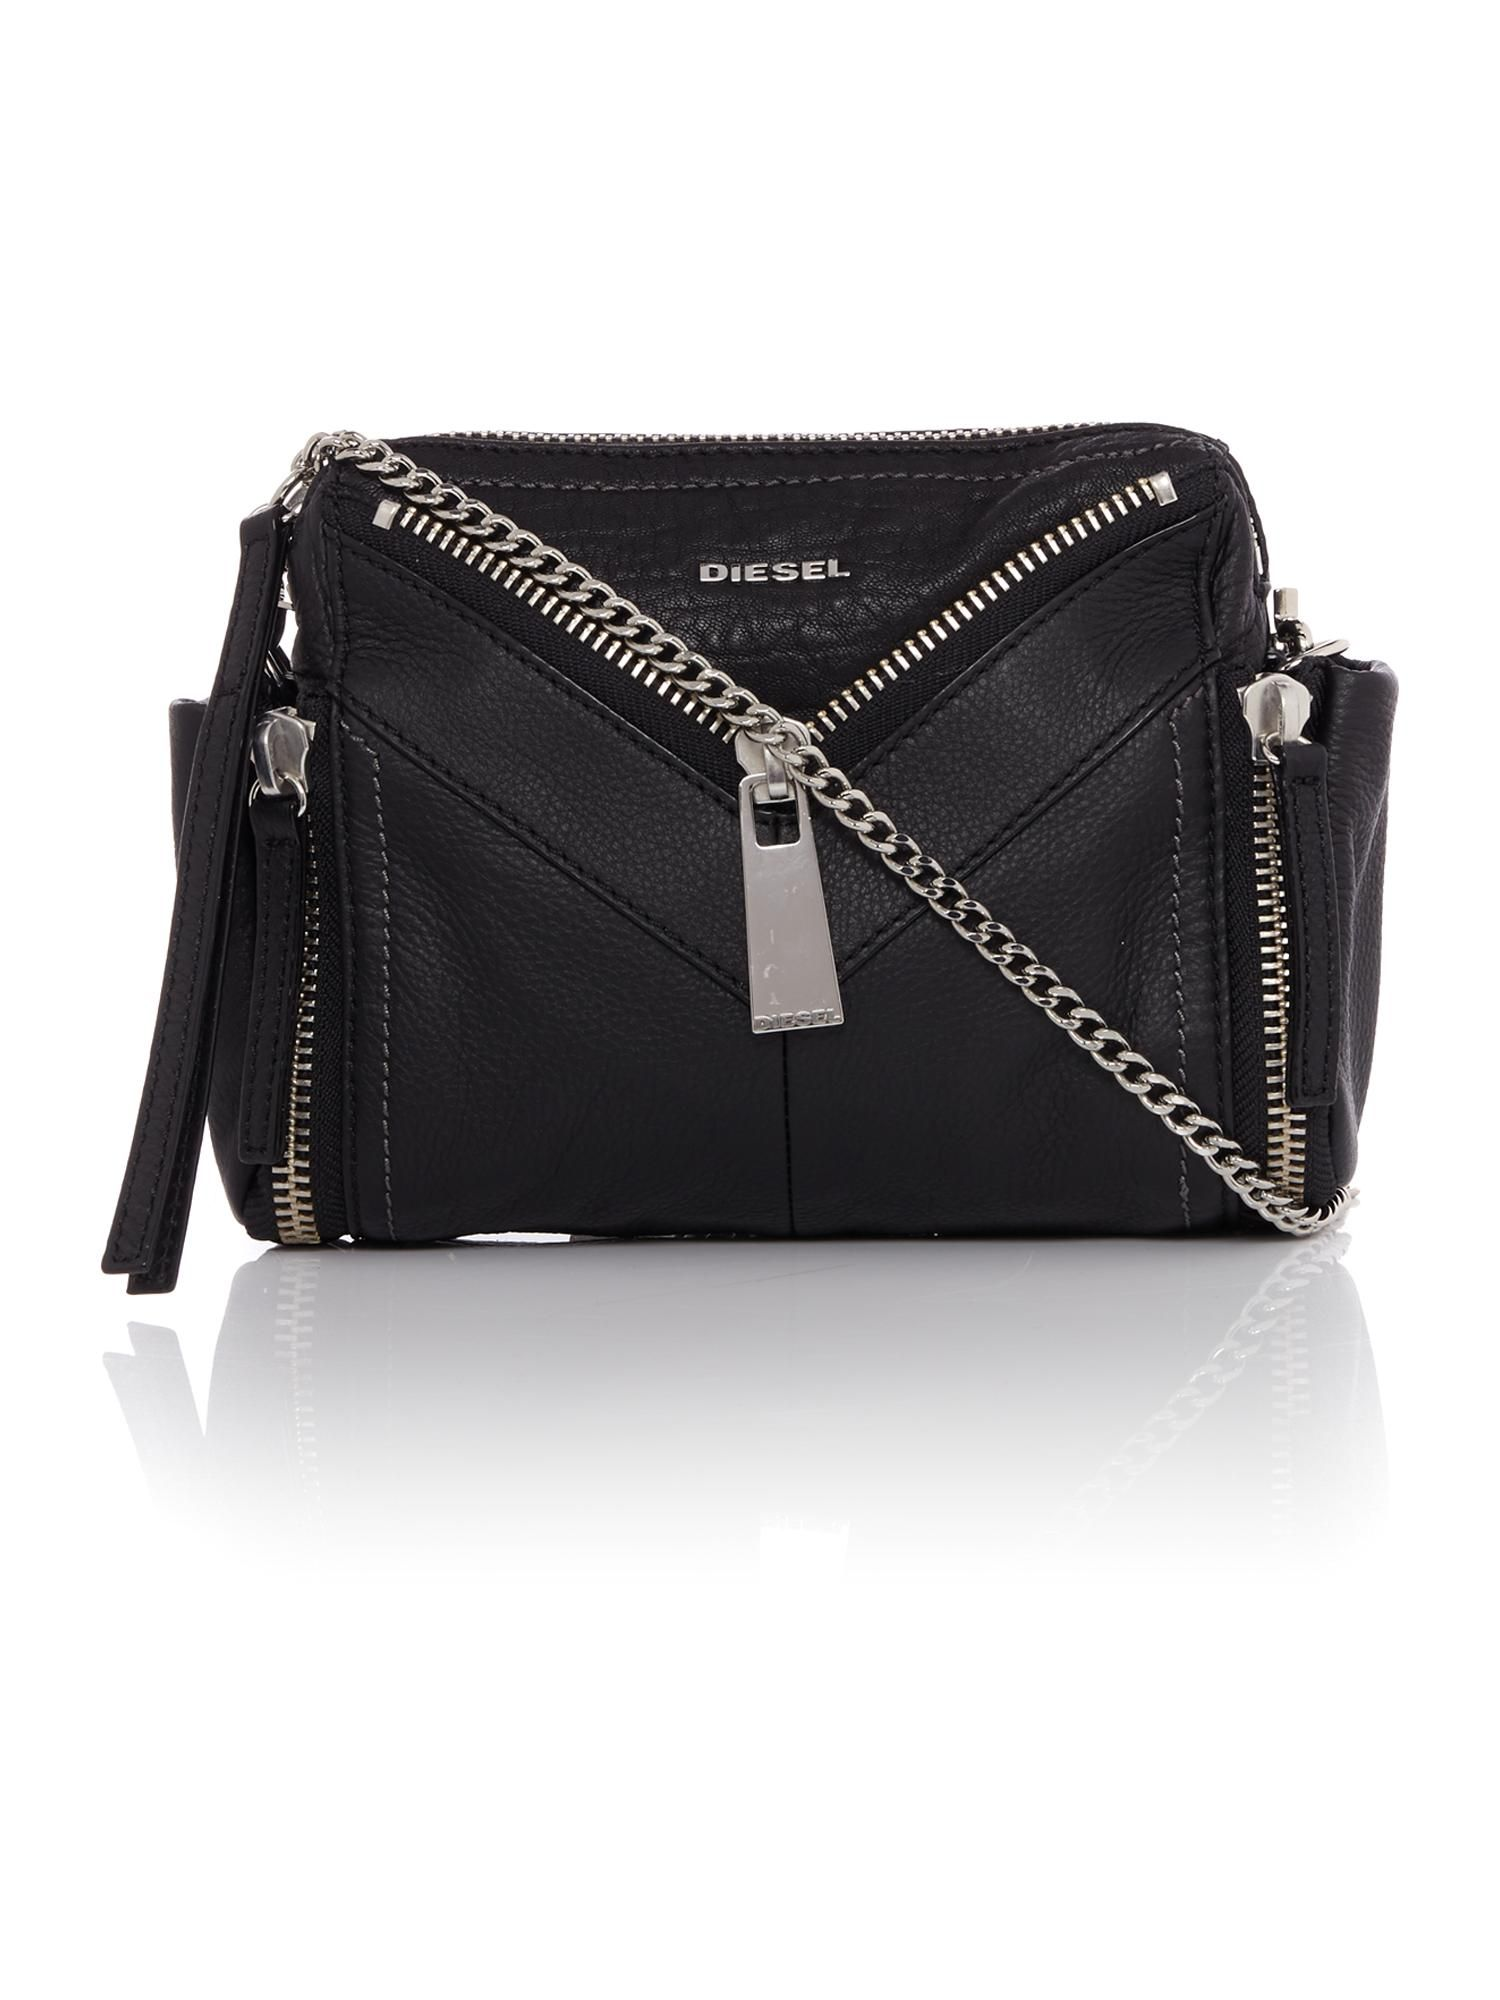 71108487aadd Diesel Le-zipper Le-bhonny Crossbody Bag - House of Fraser